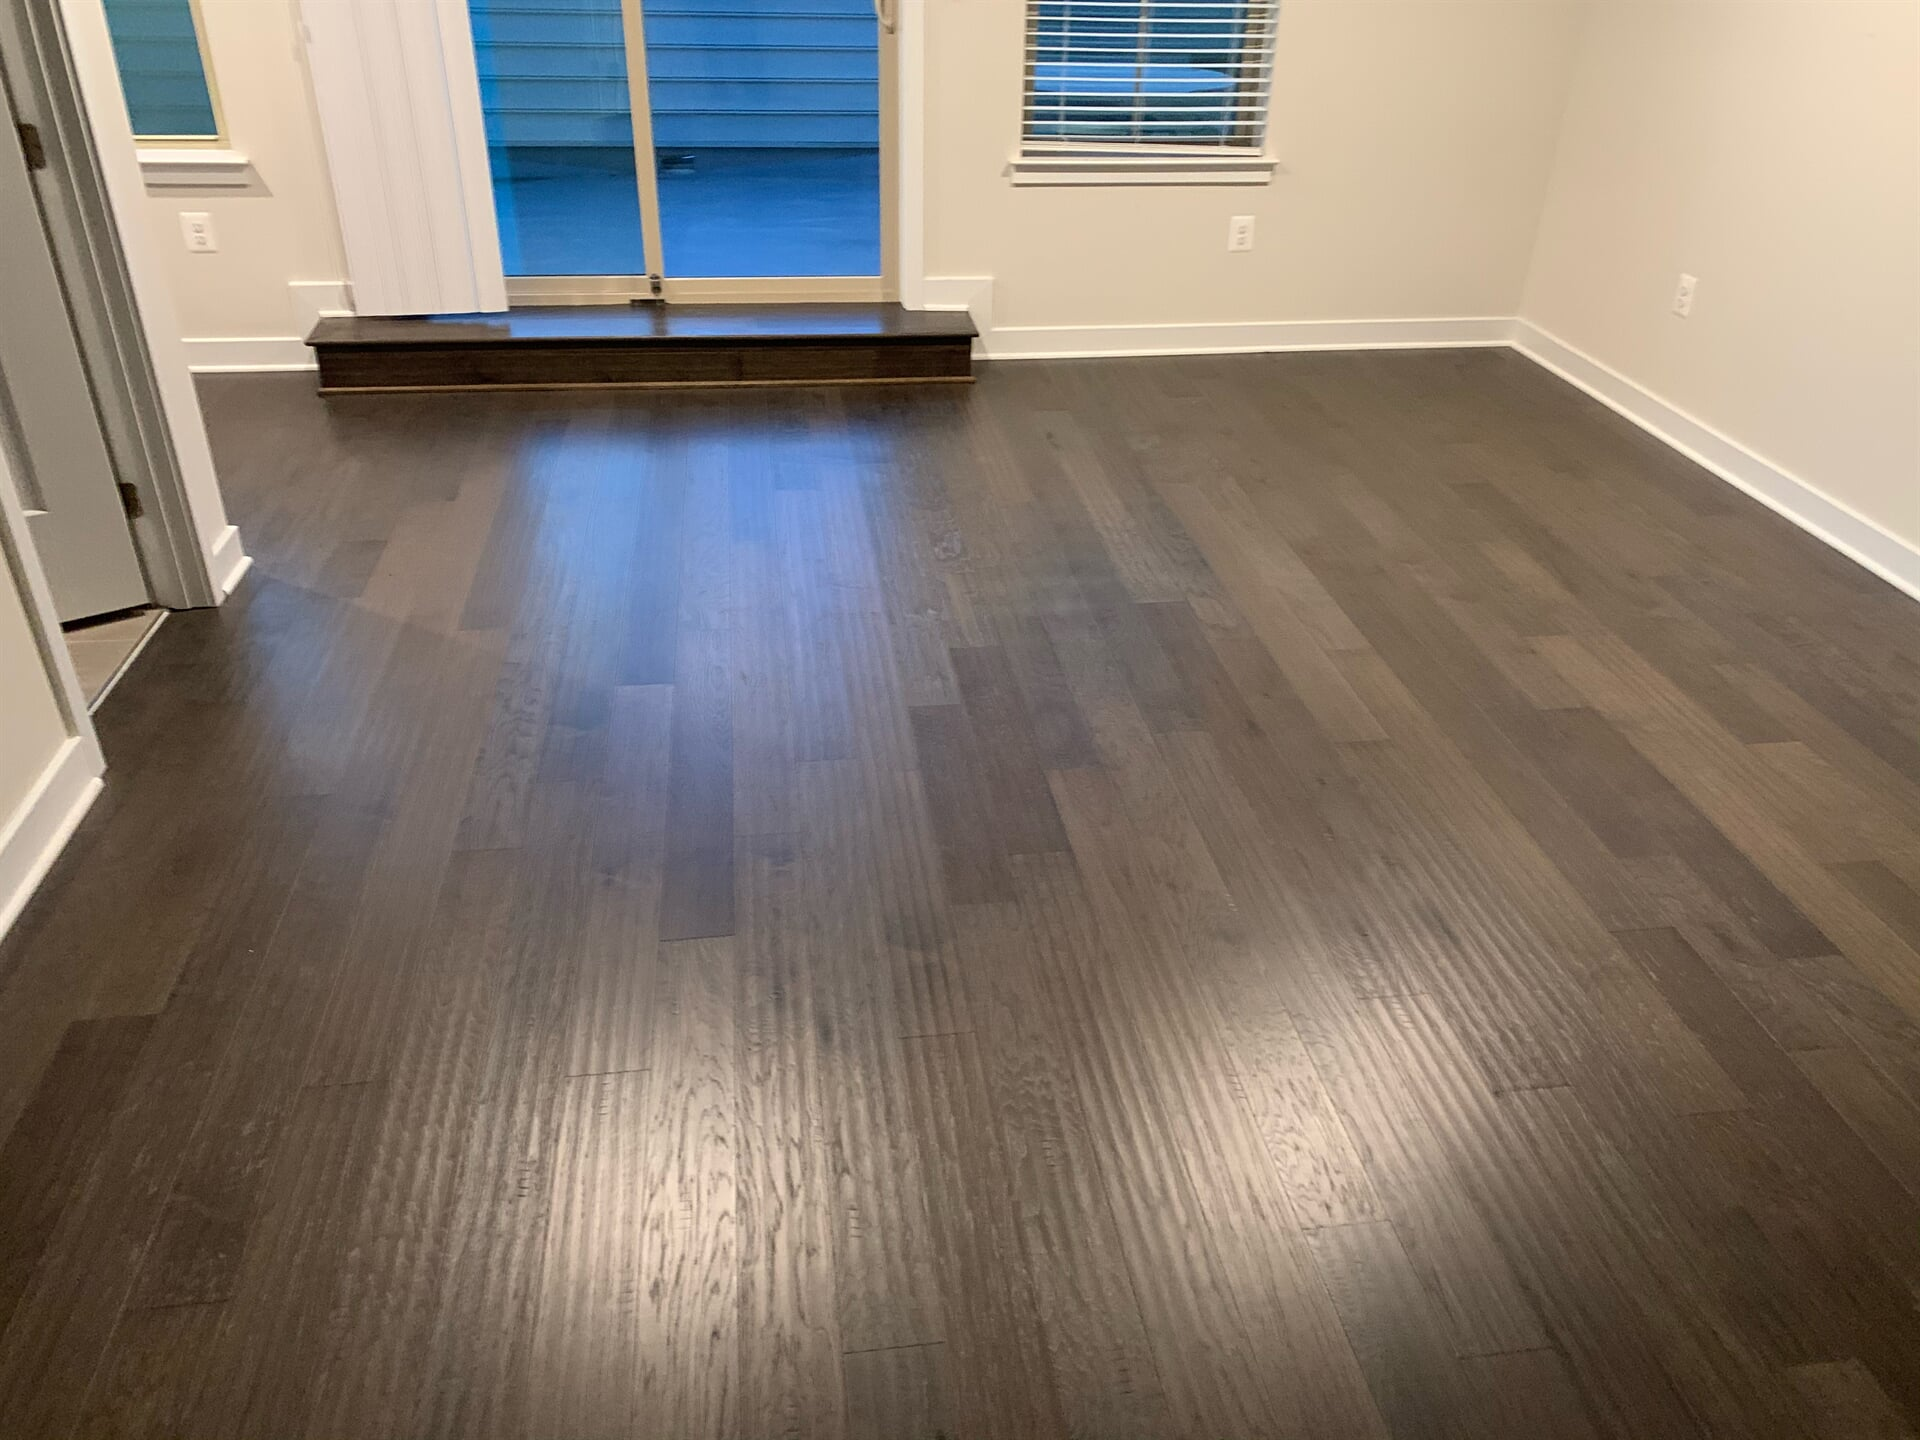 Wood floors in Potomac, MD from Carpet & Floor Express